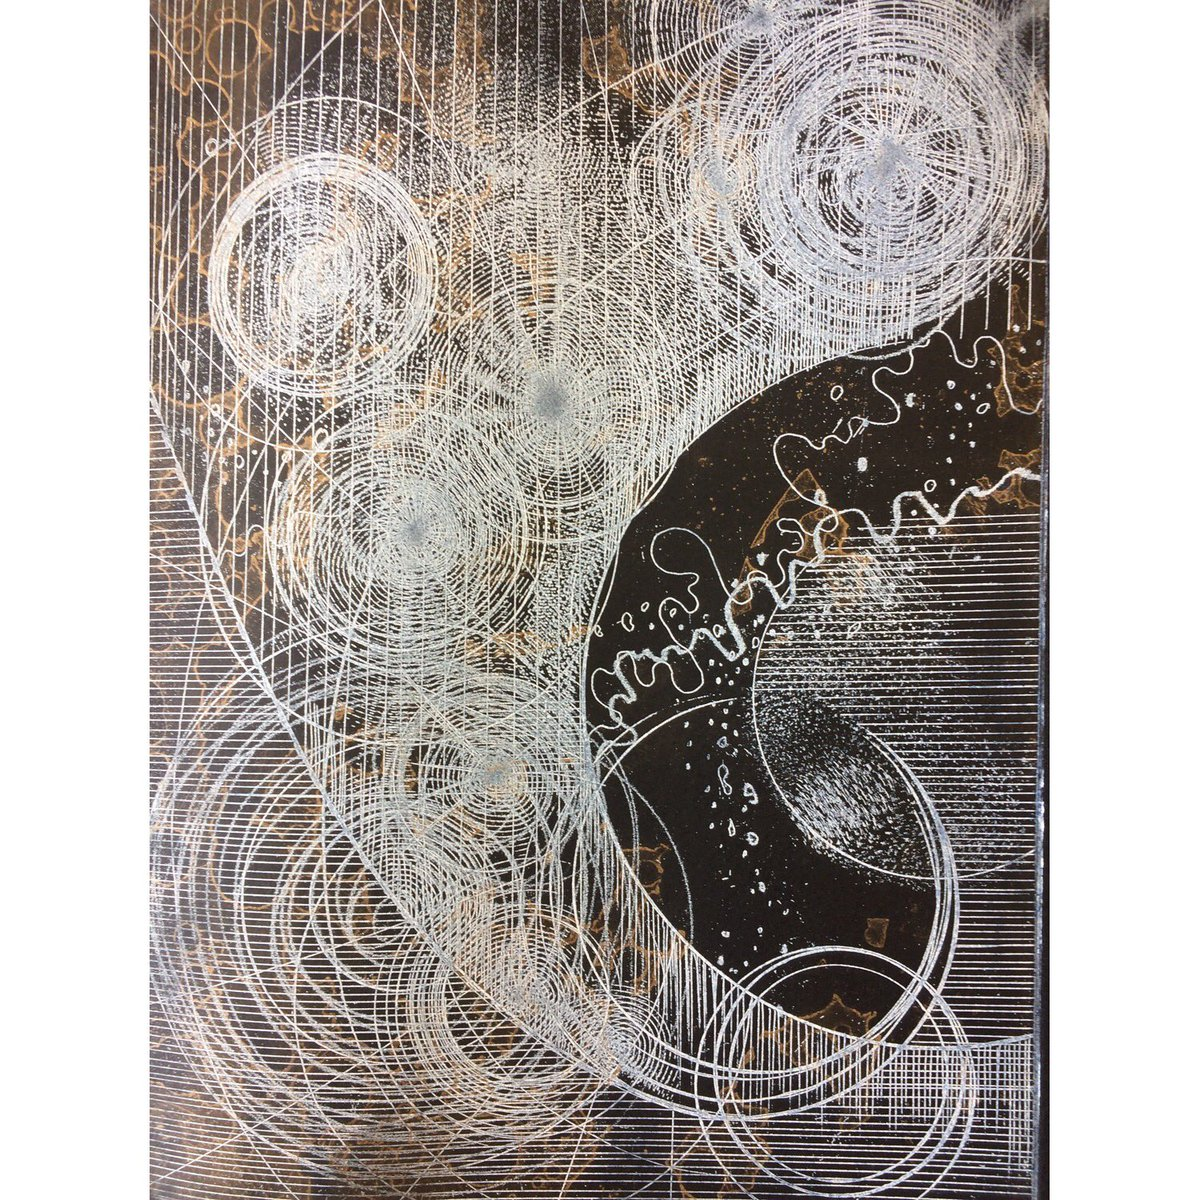 A still image of a new etching printed onto Arches Velin Noir, #black #paper #printmaking #etching #celestial #abstract #art #print #circles<br>http://pic.twitter.com/CbnHGvGA1A